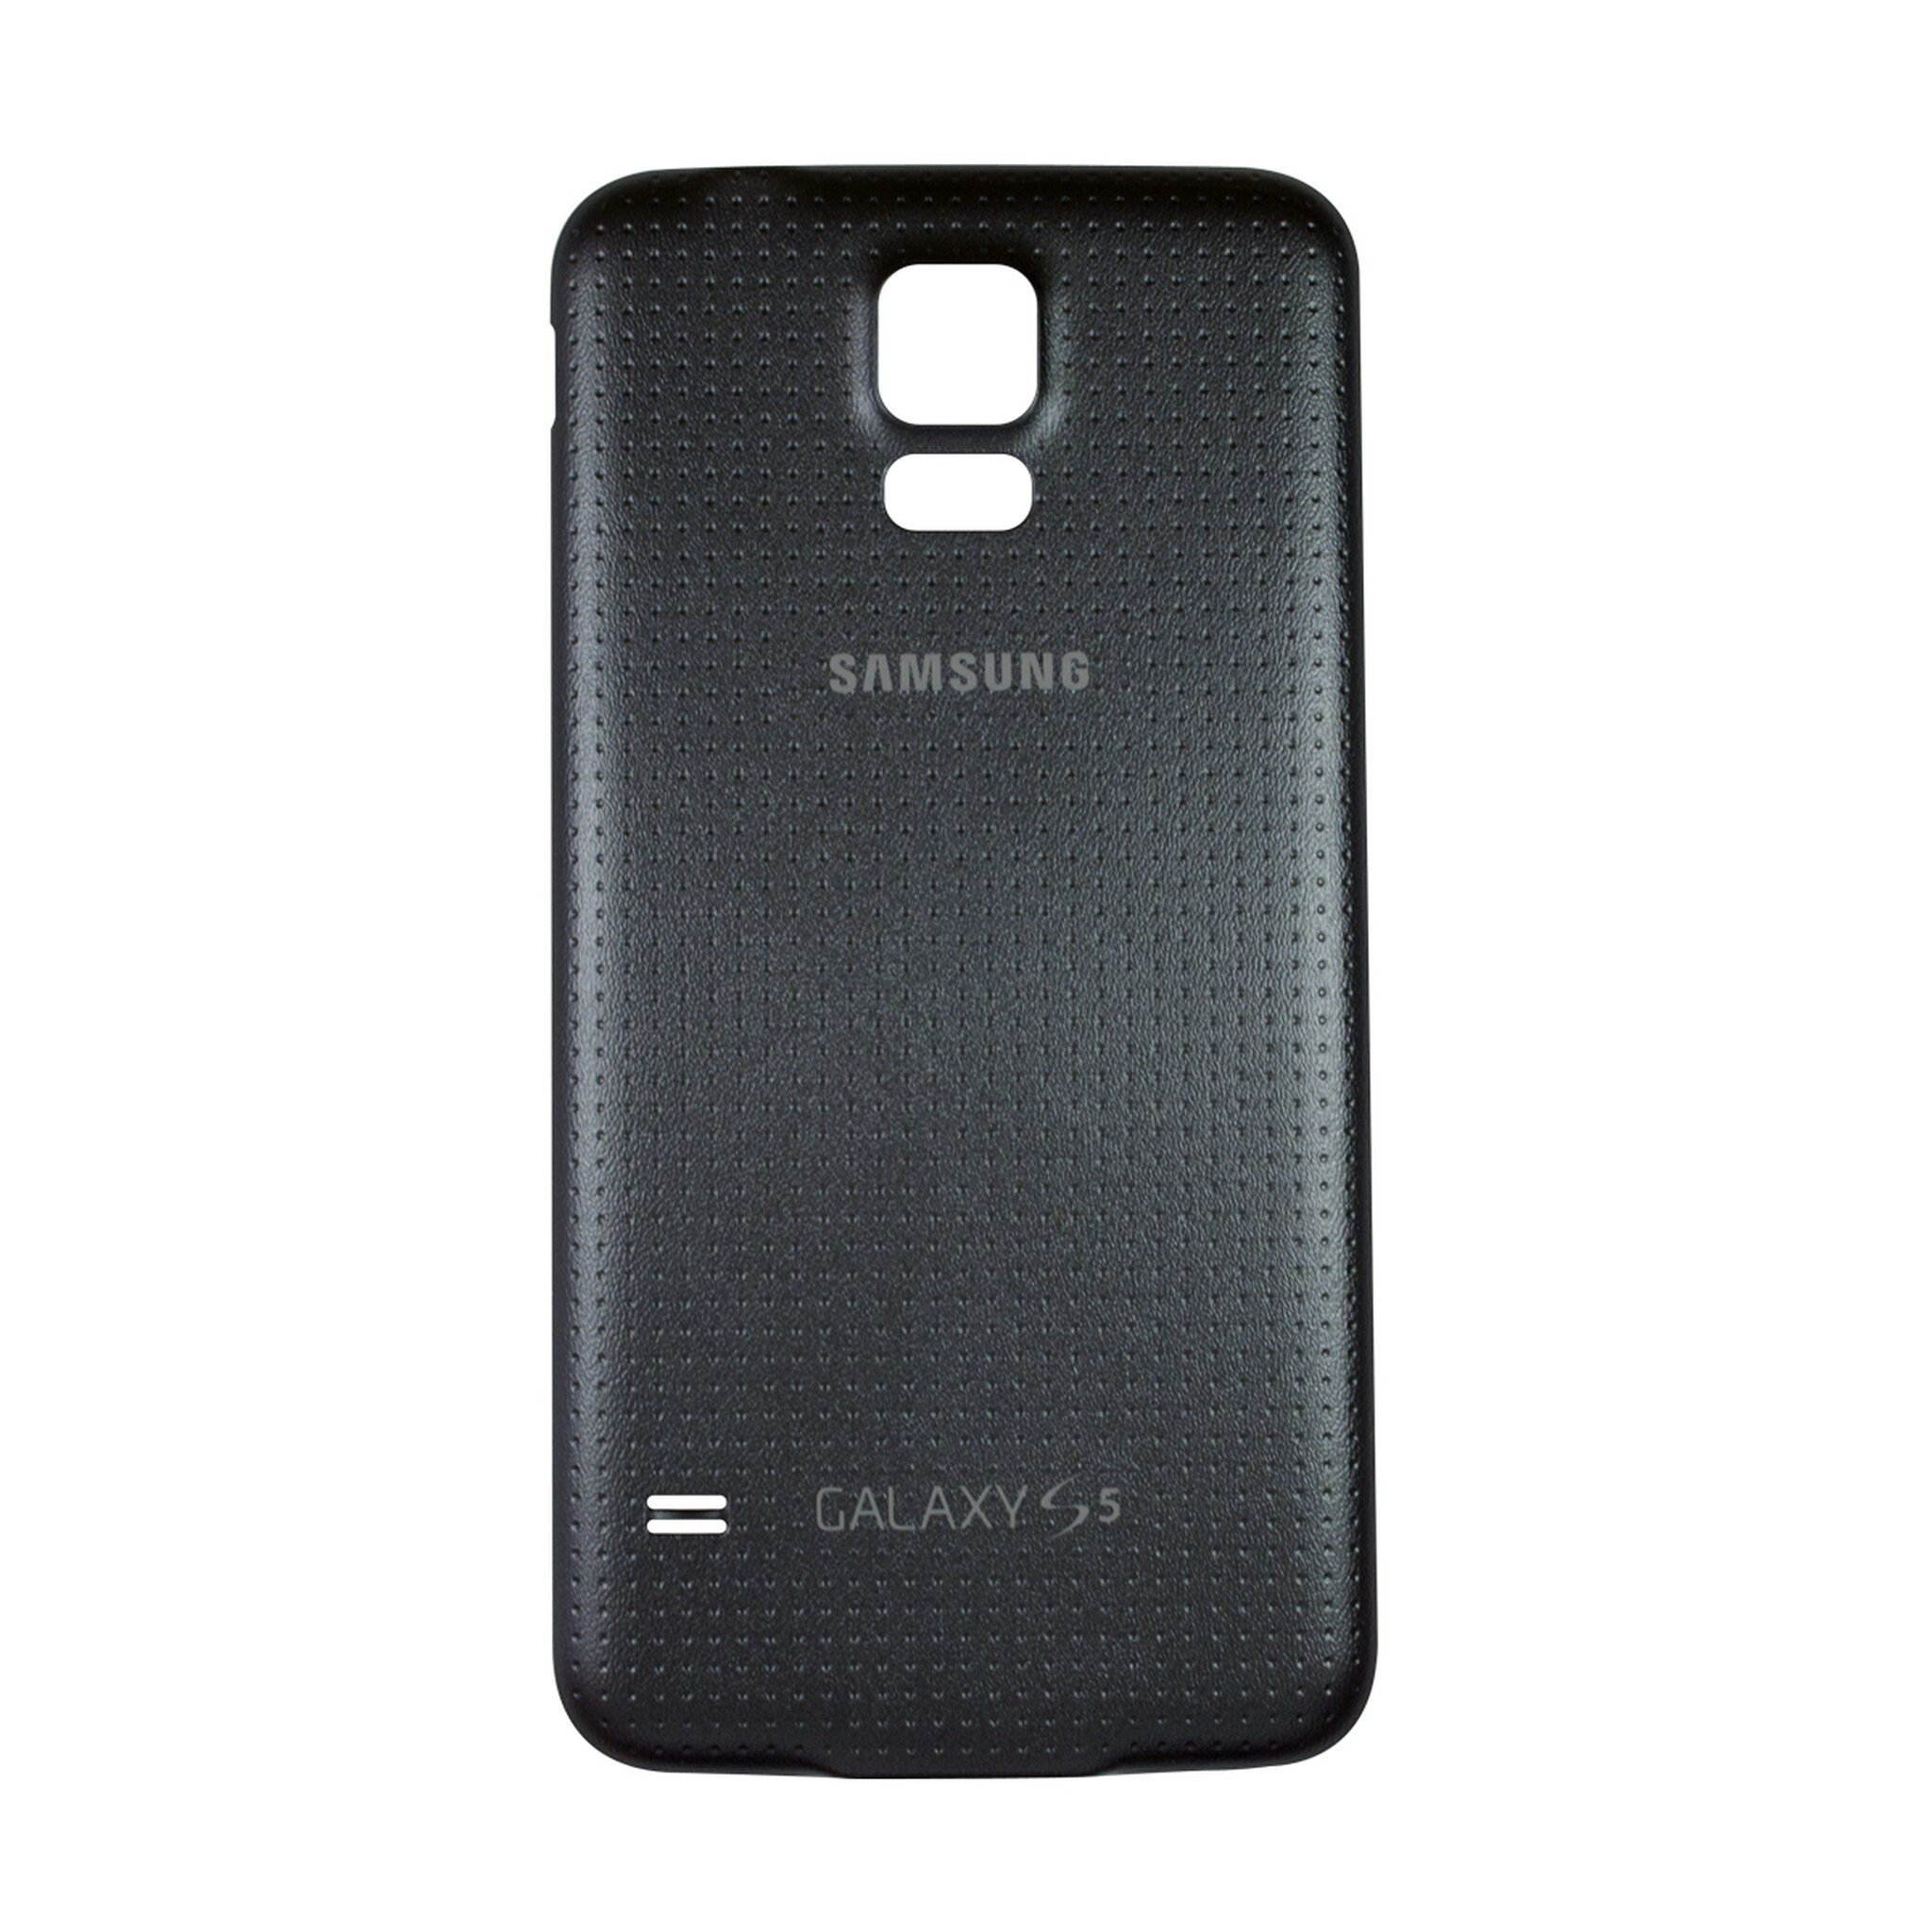 Samsung Galaxy S5 Back Door, Black & White, 1 Tested for Key Functions, R2/Ready for Resale, Jacksonville FL